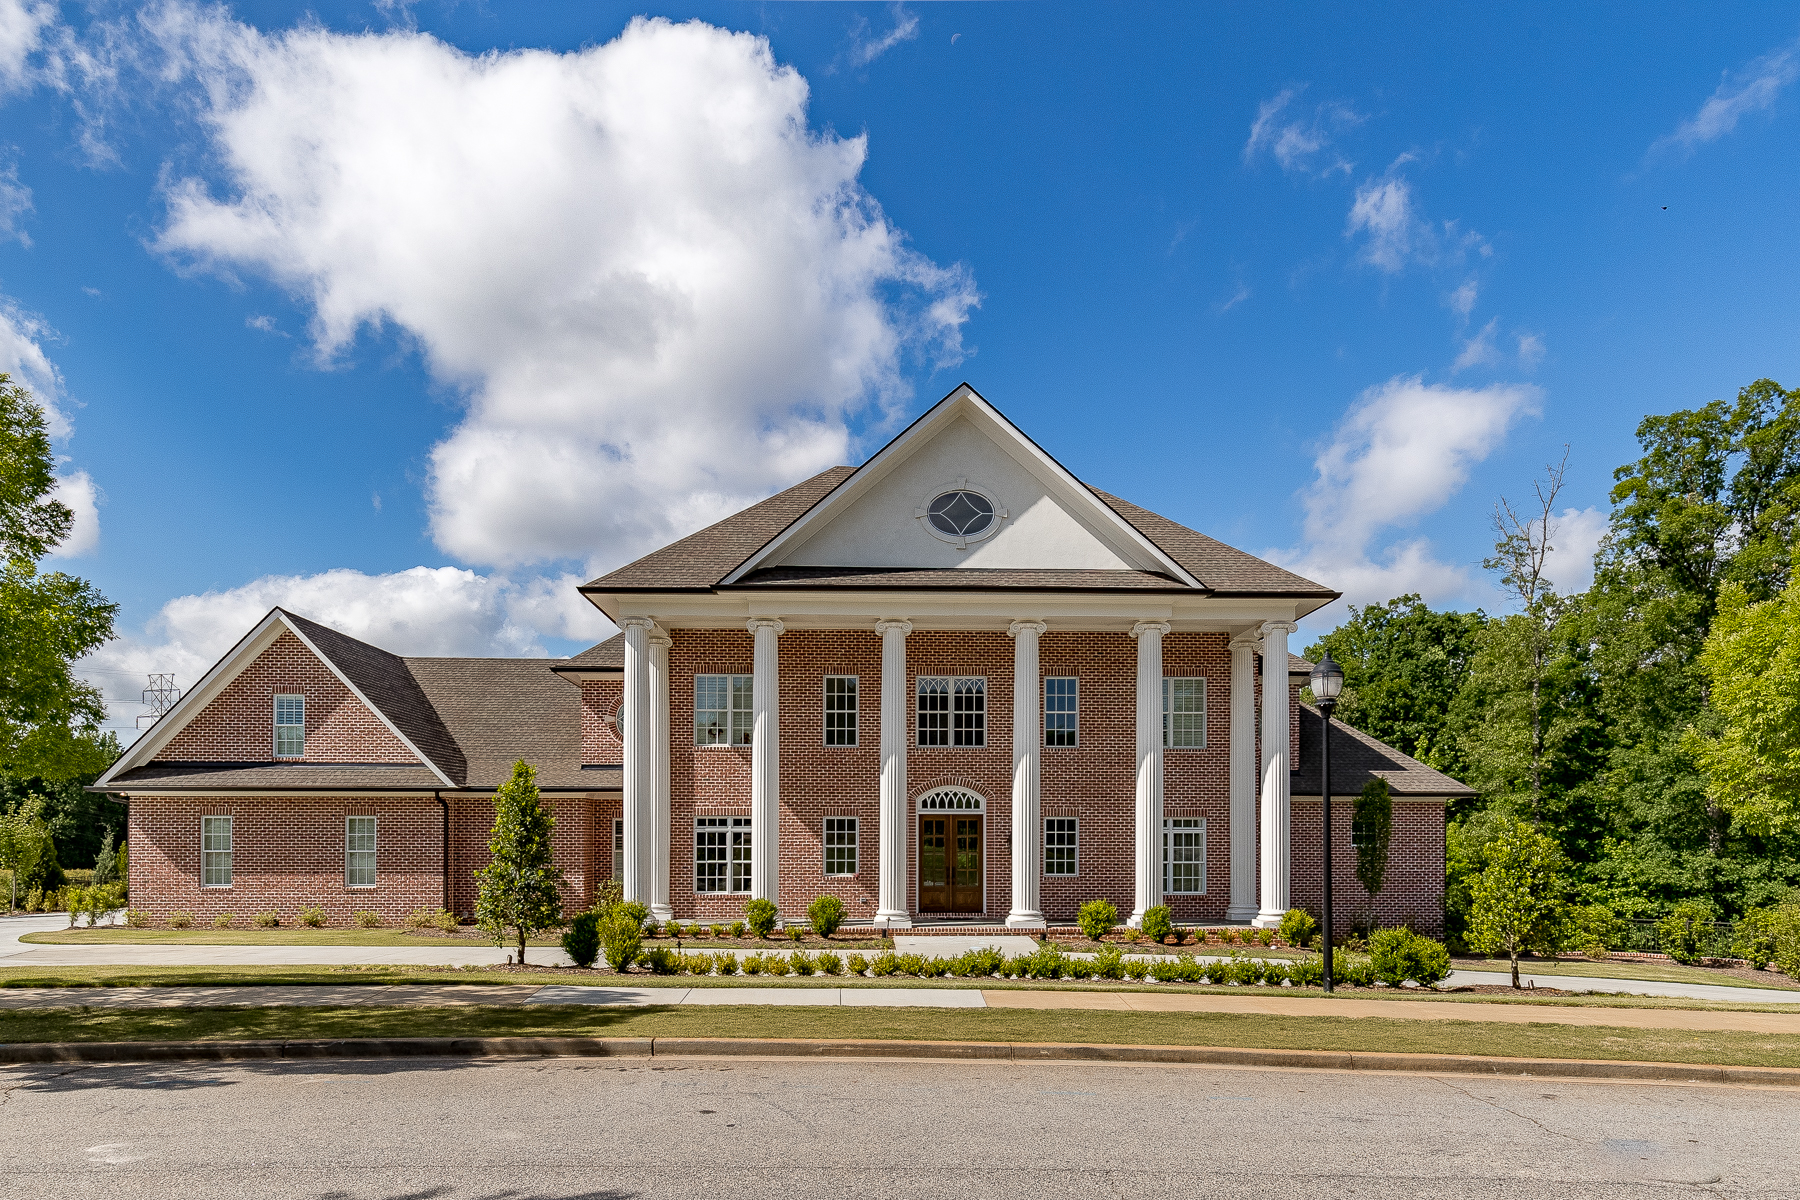 Single Family Homes for Sale at Stunning, brand new custom build by J. Francis Builders! 112 Welling Circle Greenville, South Carolina 29607 United States